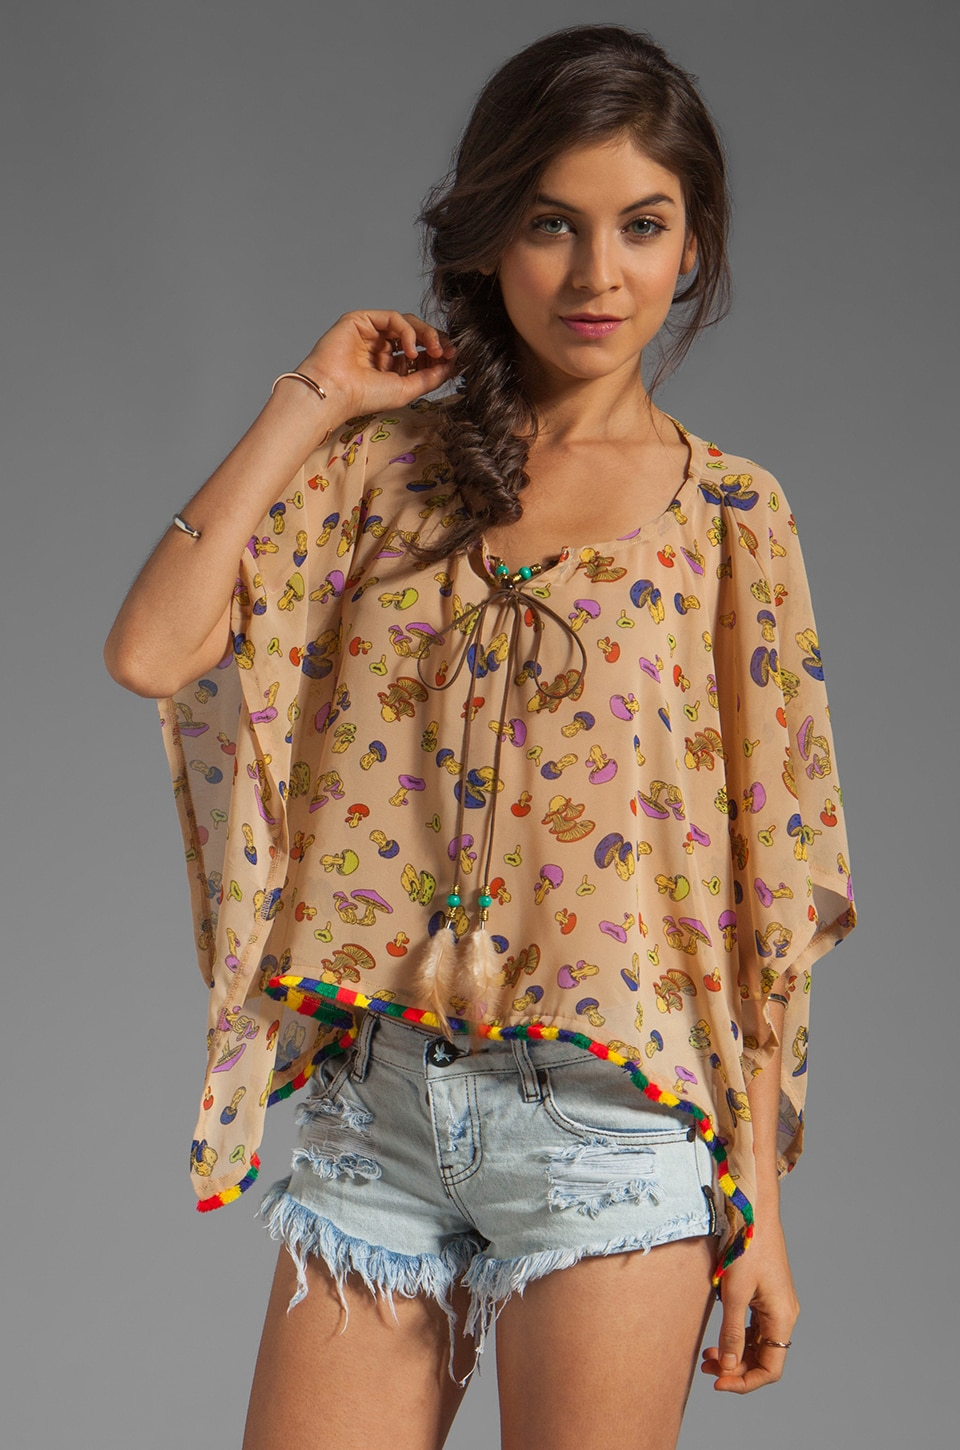 Gypsy Junkies Virginia Poncho in Mushroom Magic